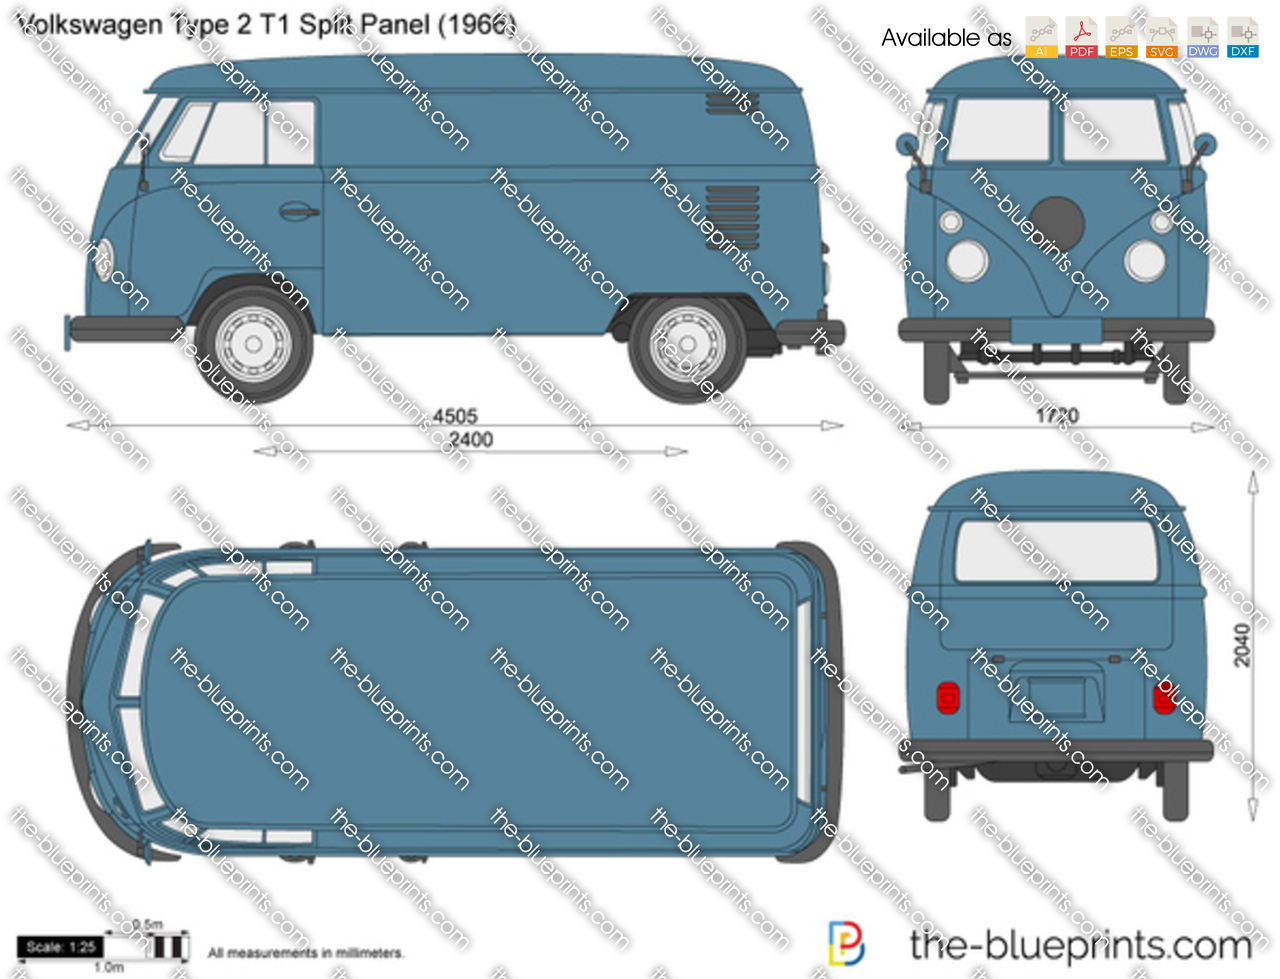 1964 Volkswagen Type 2 T1 Split Panel